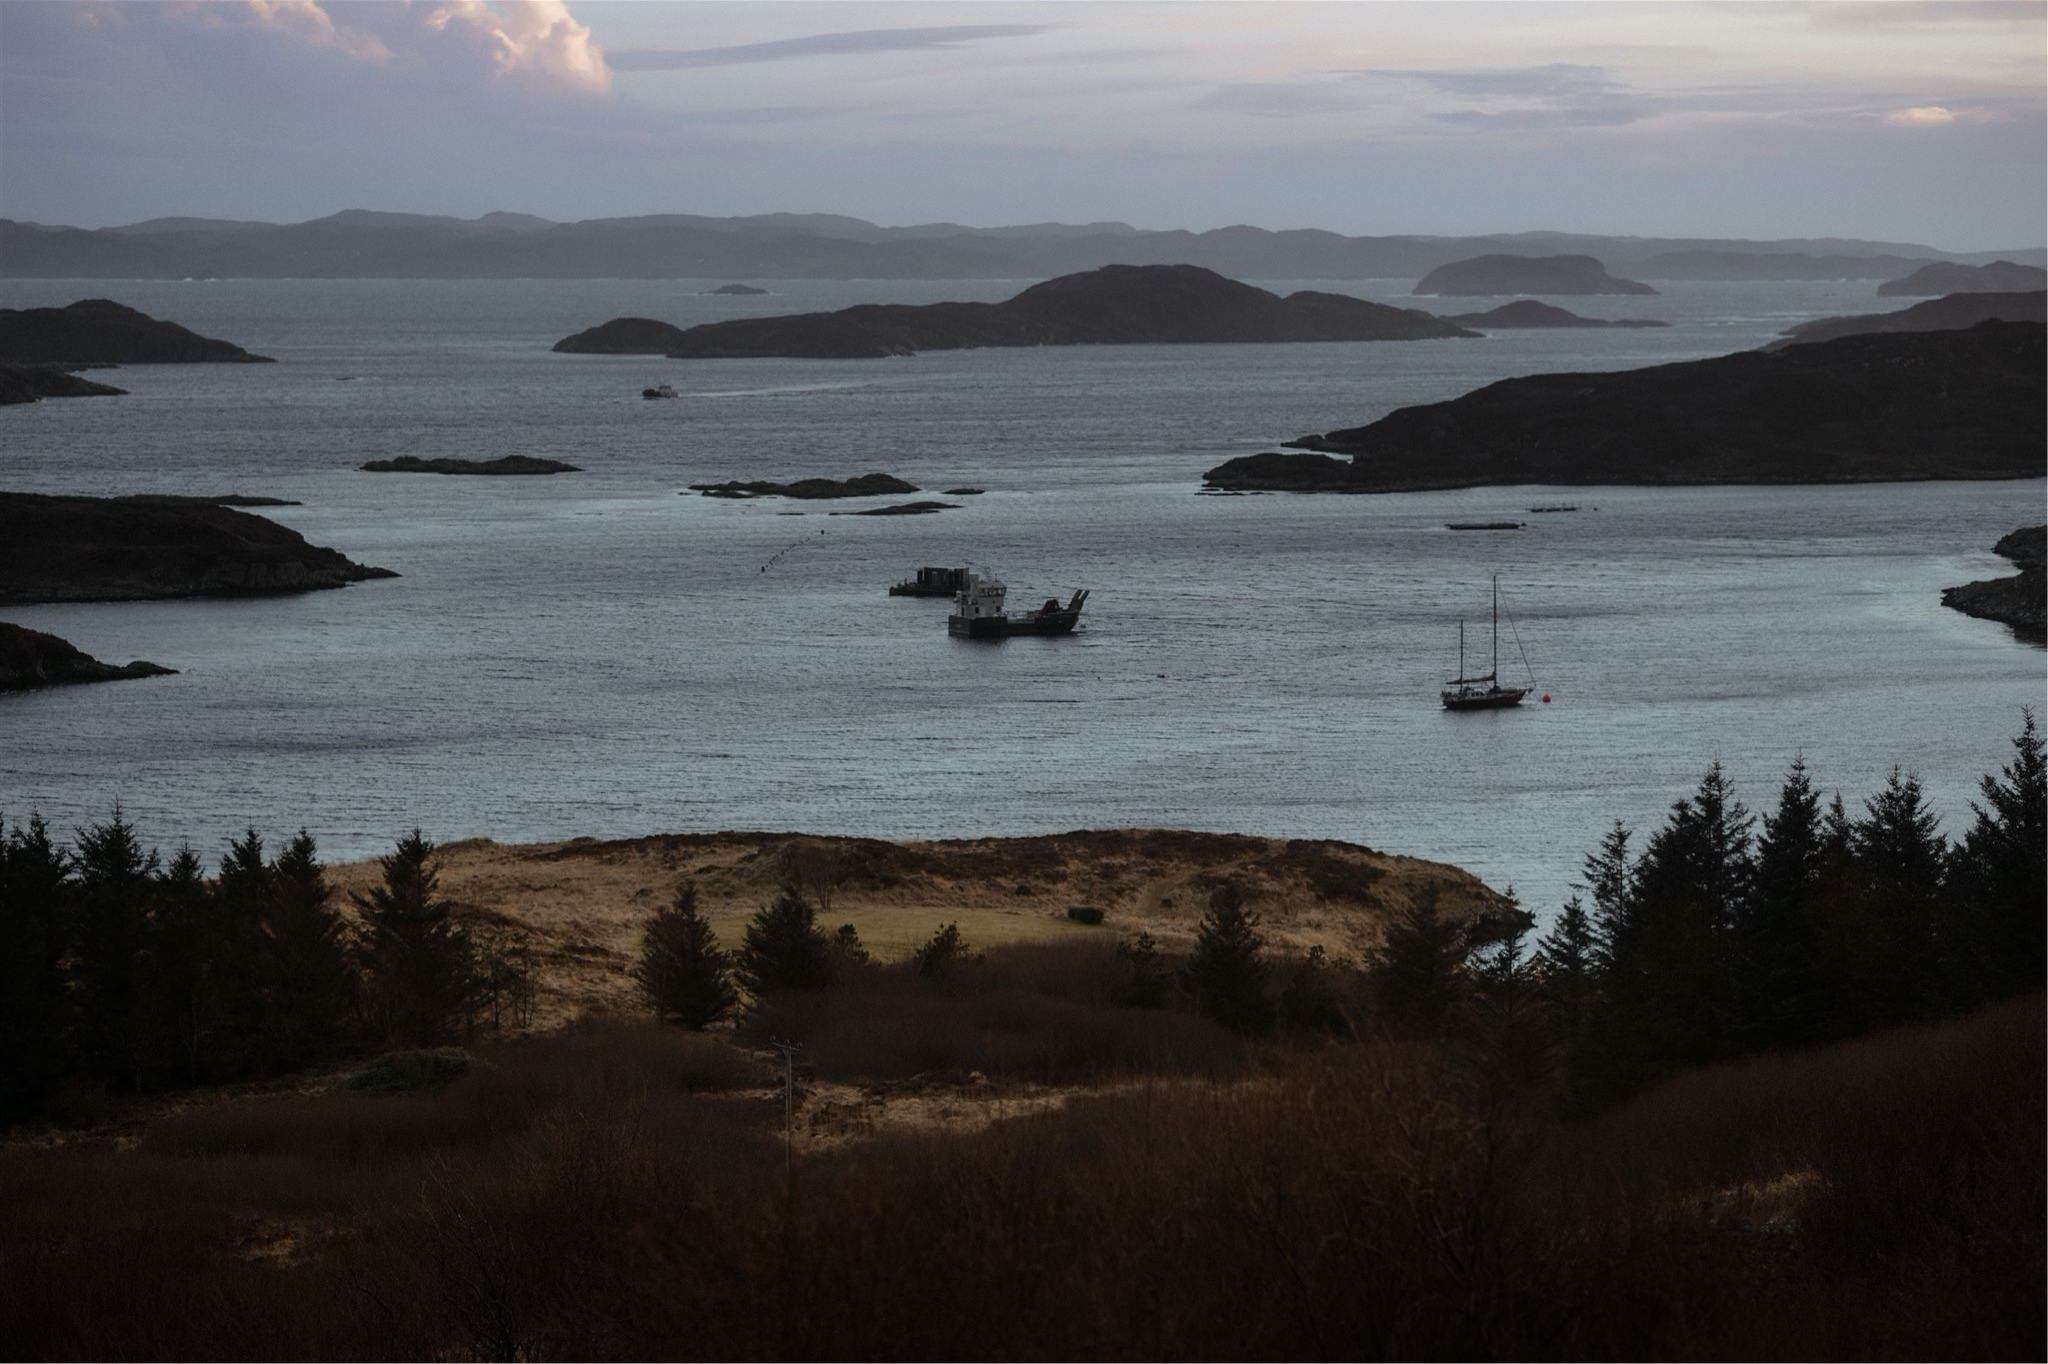 Sea views with boats in Assynt, Scotland - on the North Coast 500